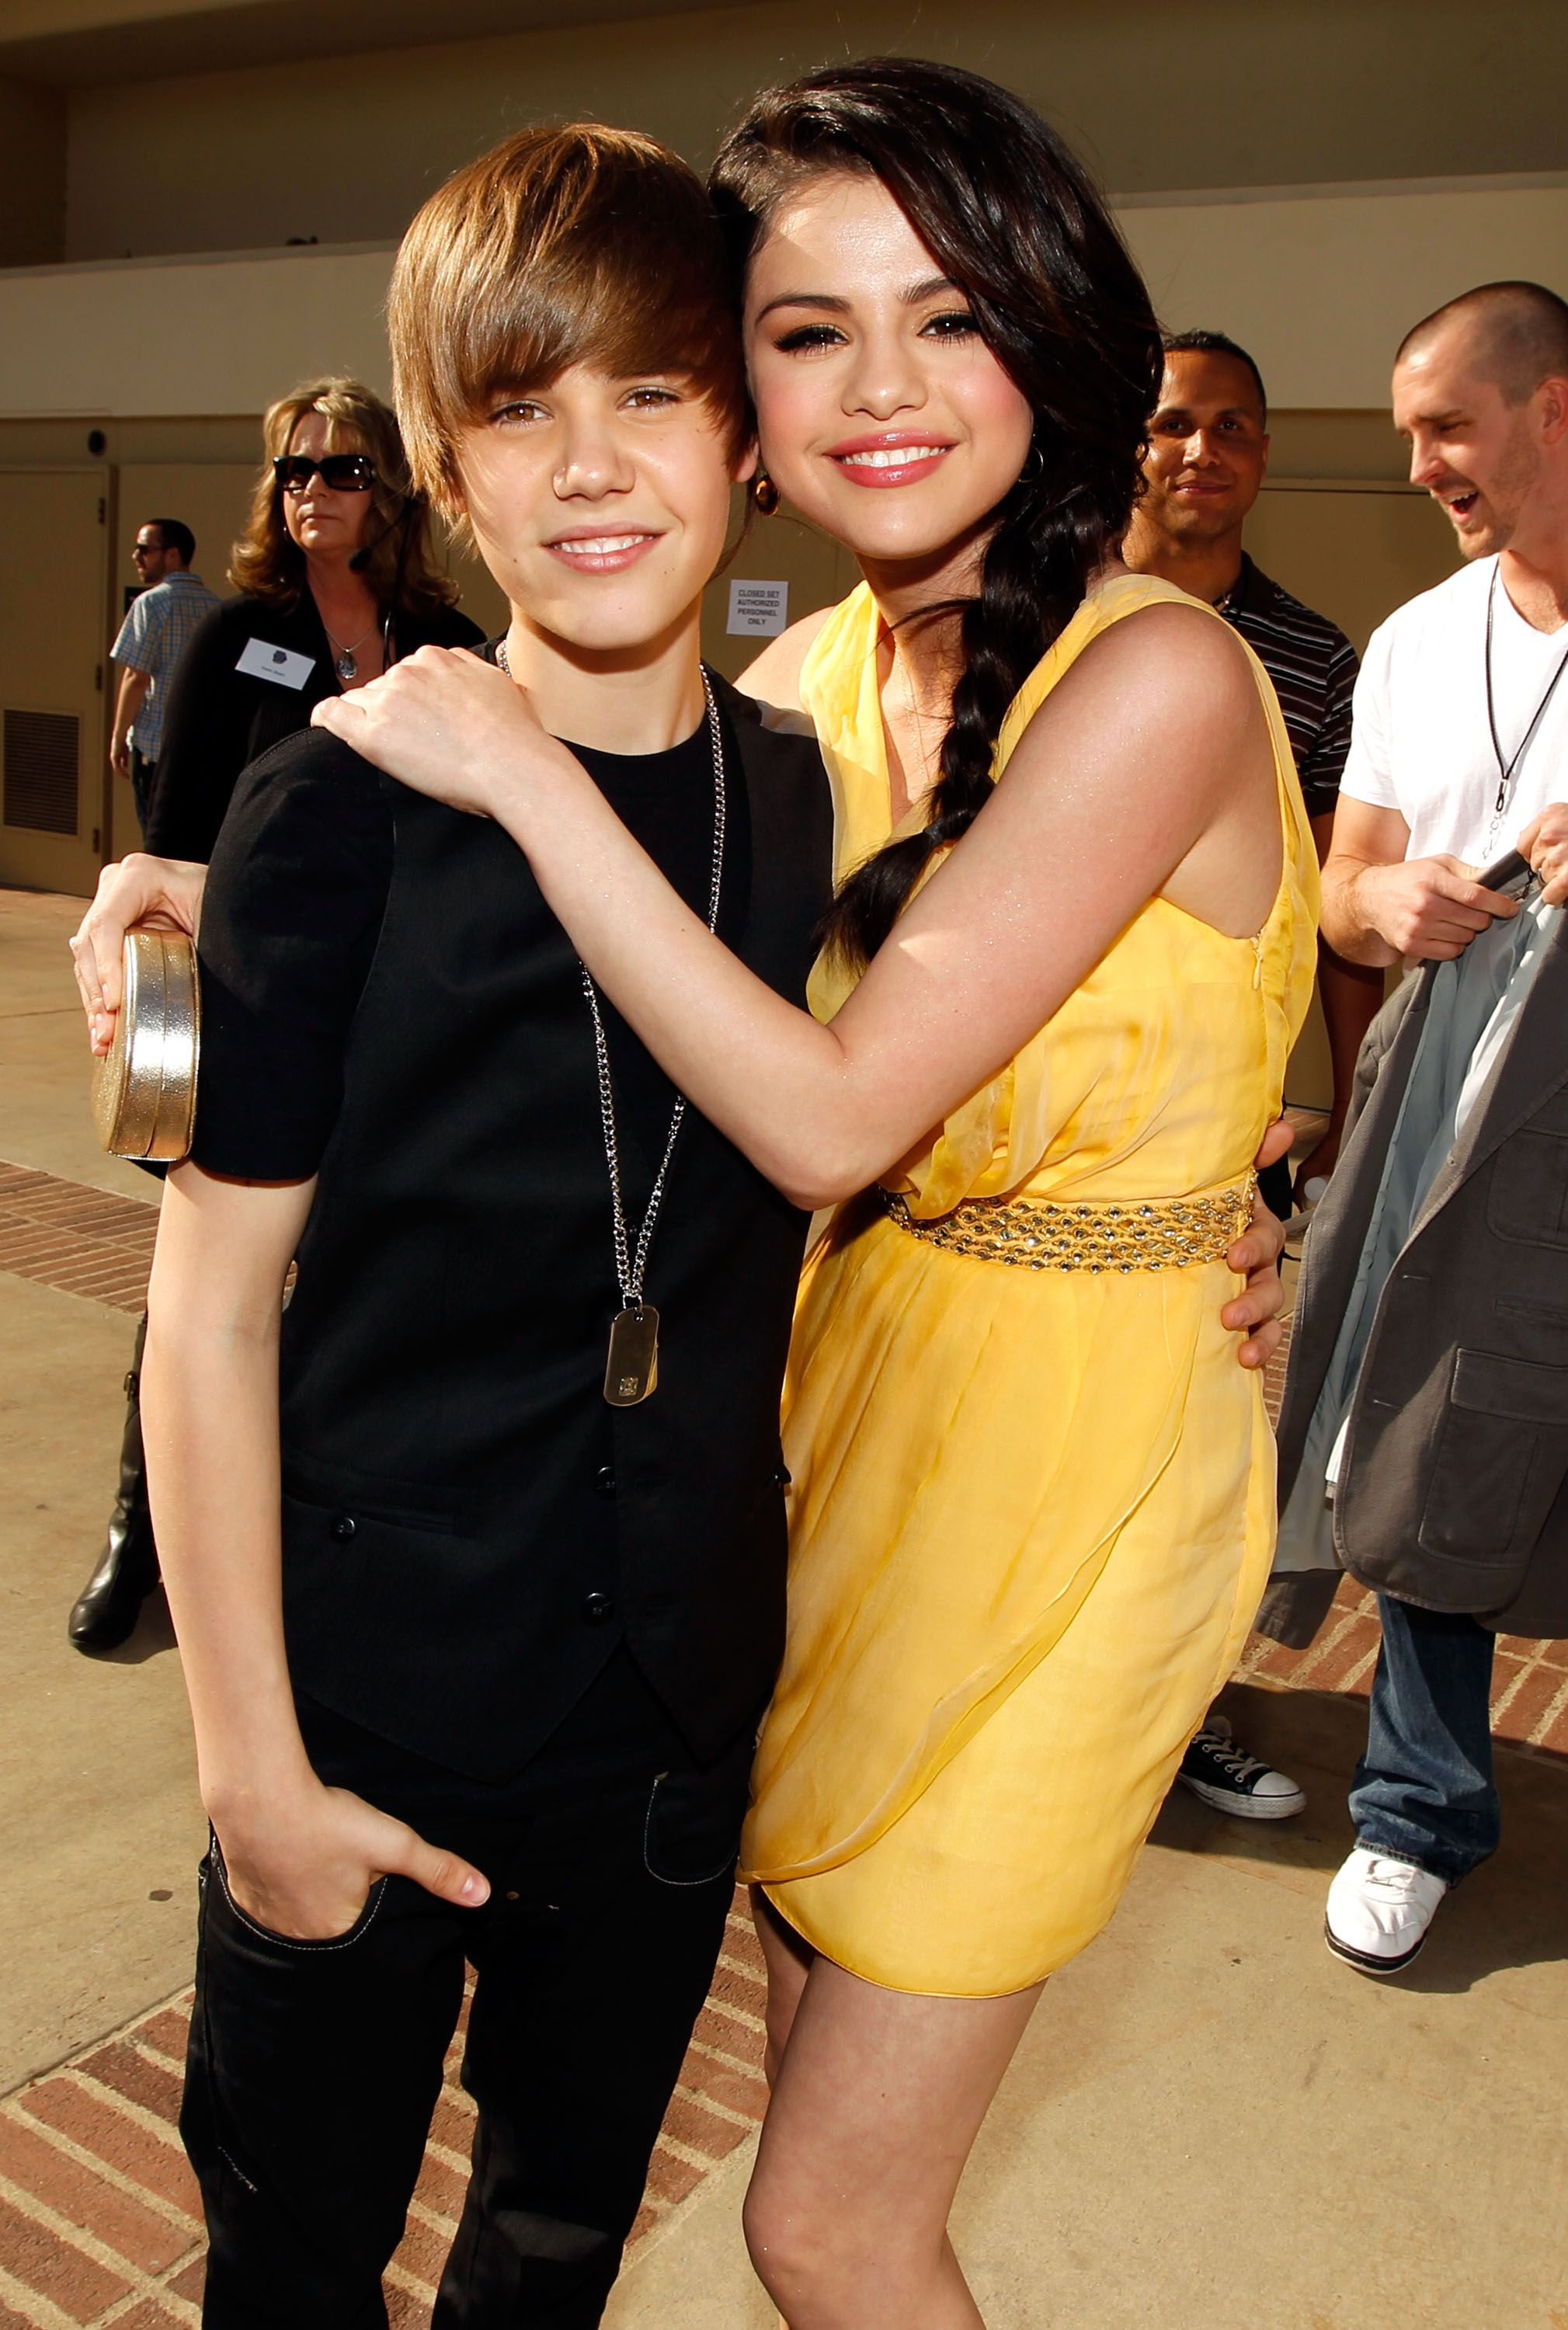 Justin Bieber begon dating Selena